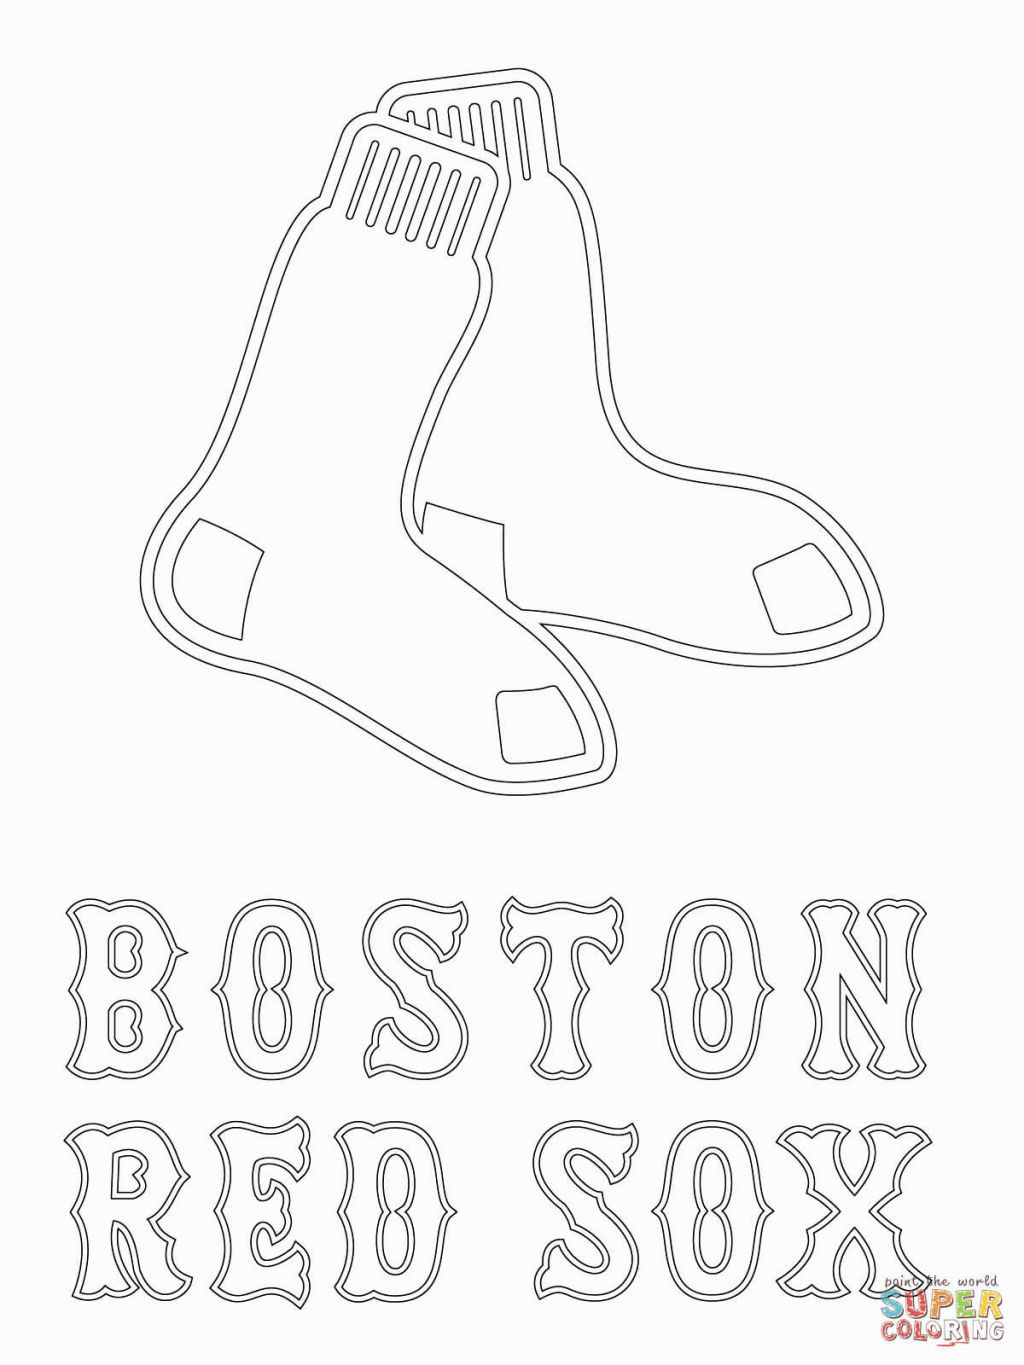 red sox coloring pages # 3